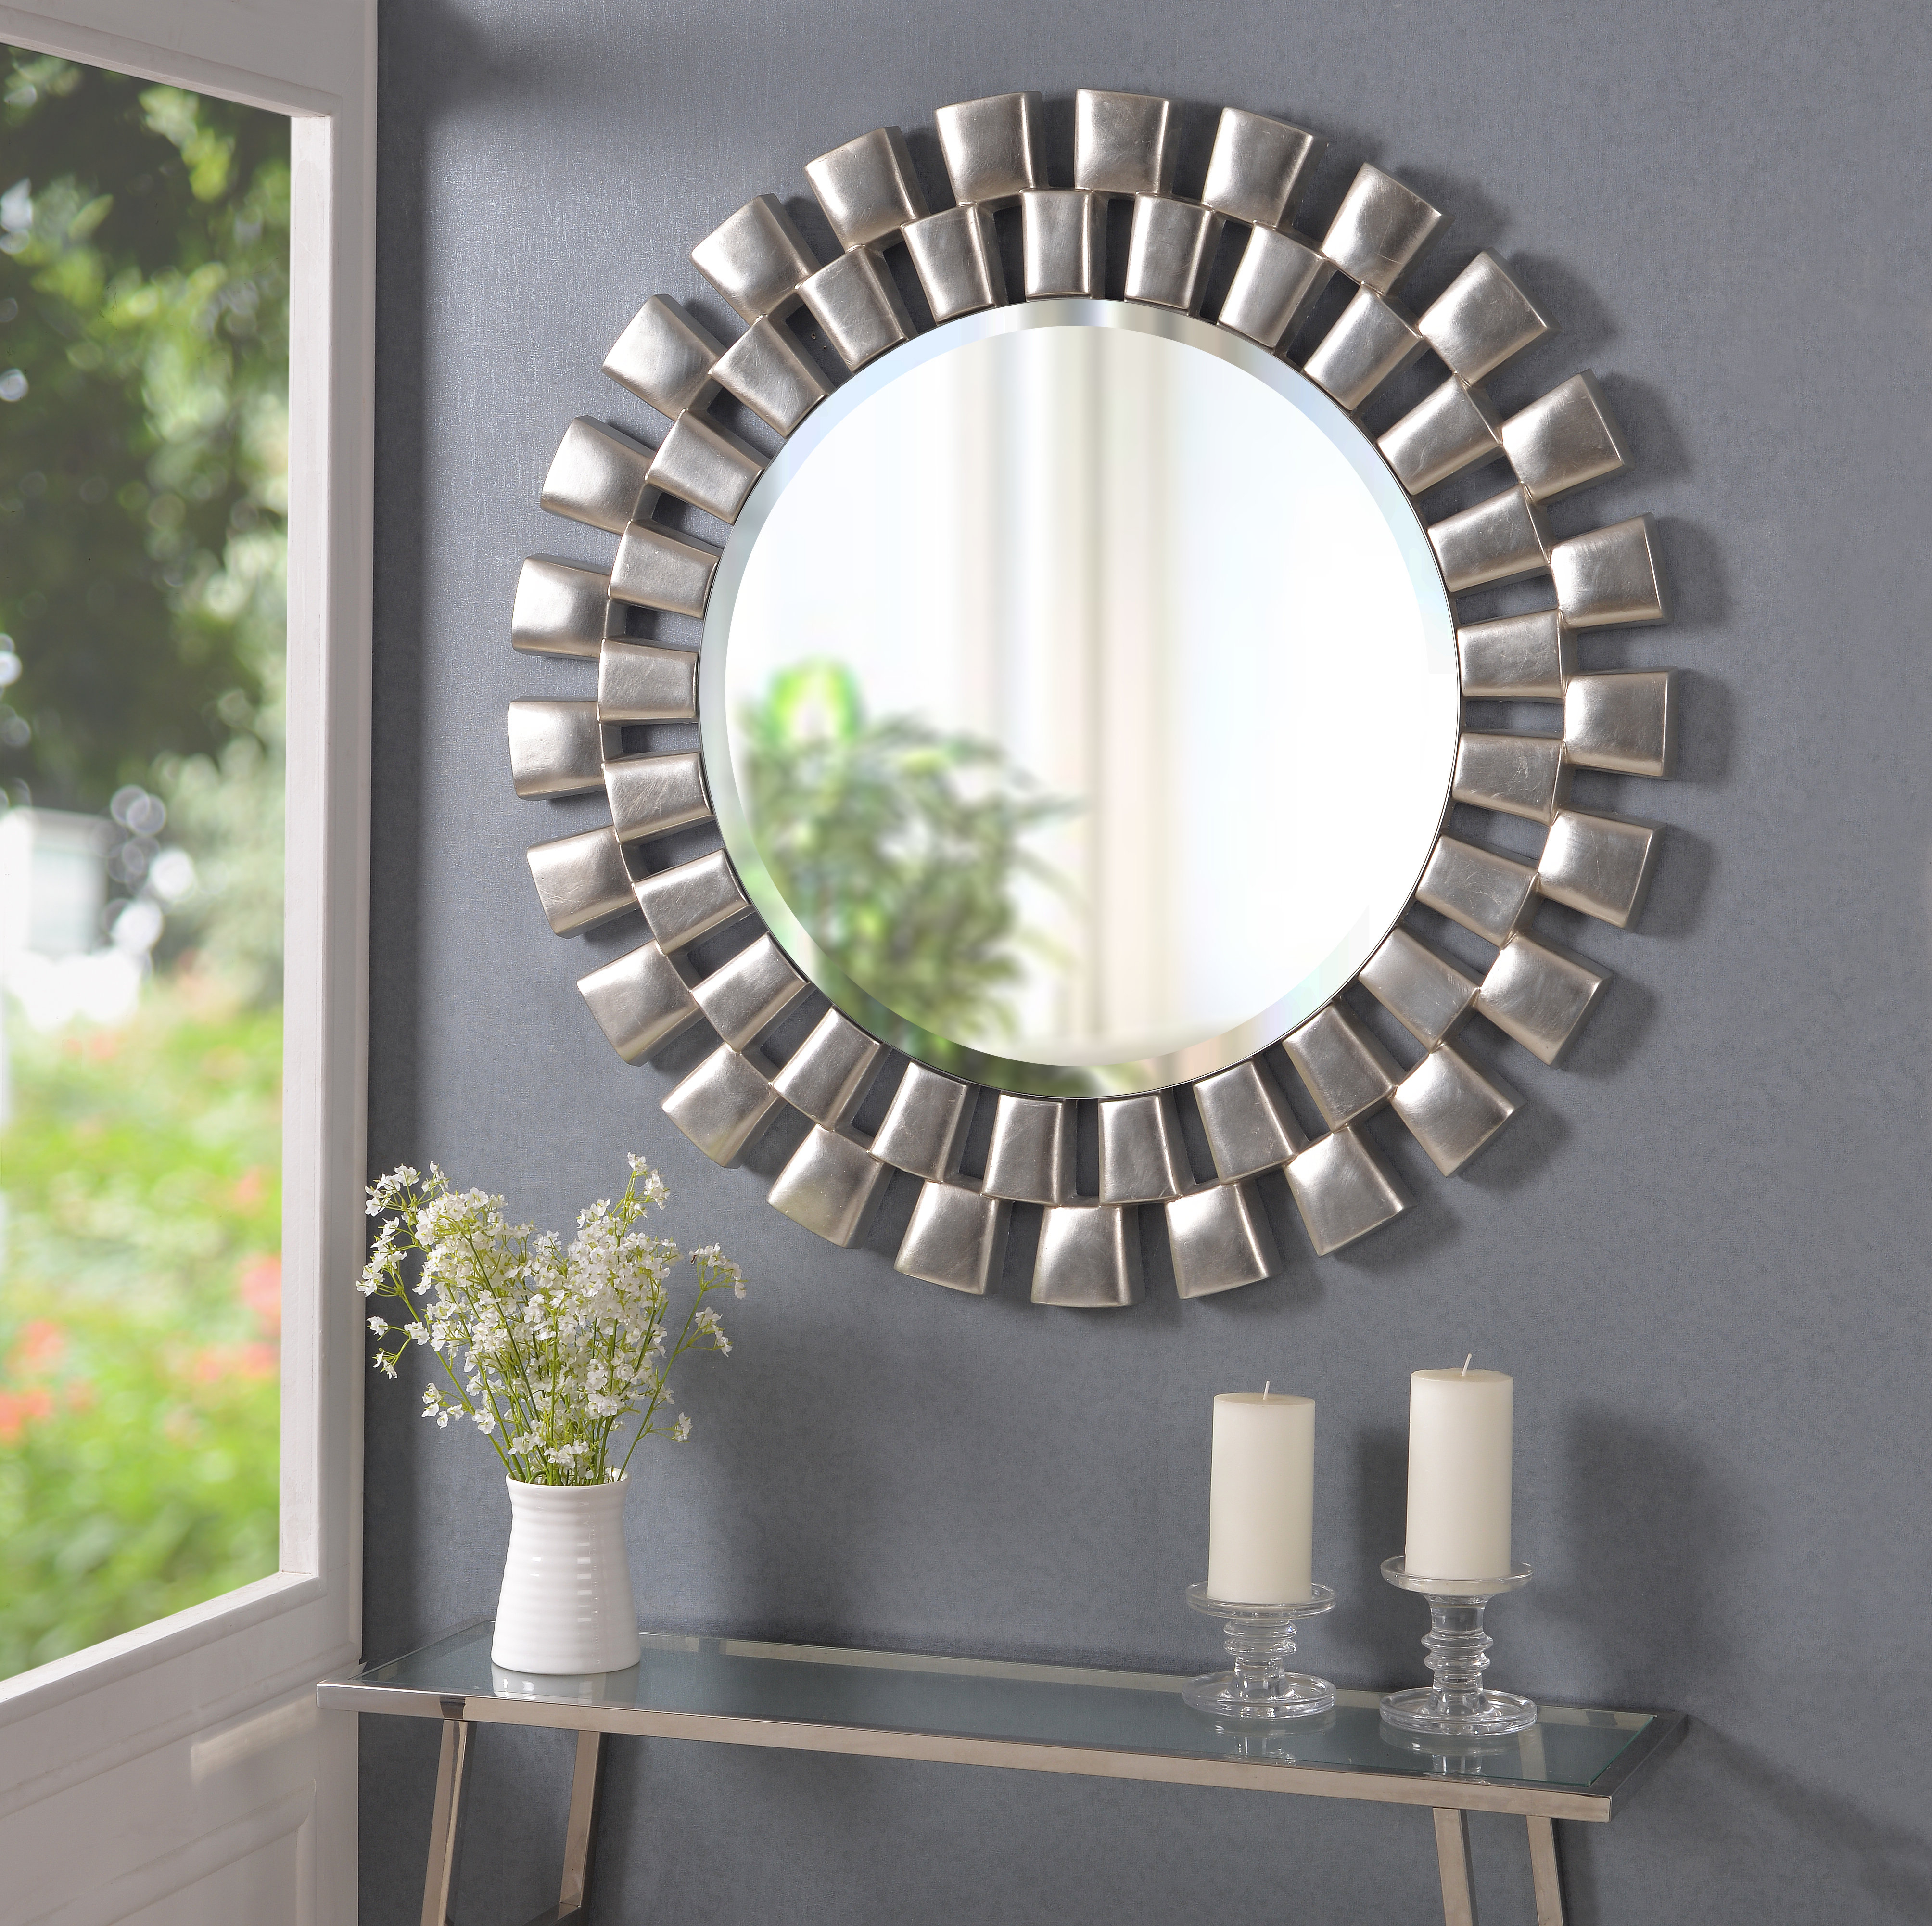 Willa Arlo Interiors Glam Beveled Accent Mirror Within Preferred Brynn Accent Mirrors (View 11 of 20)